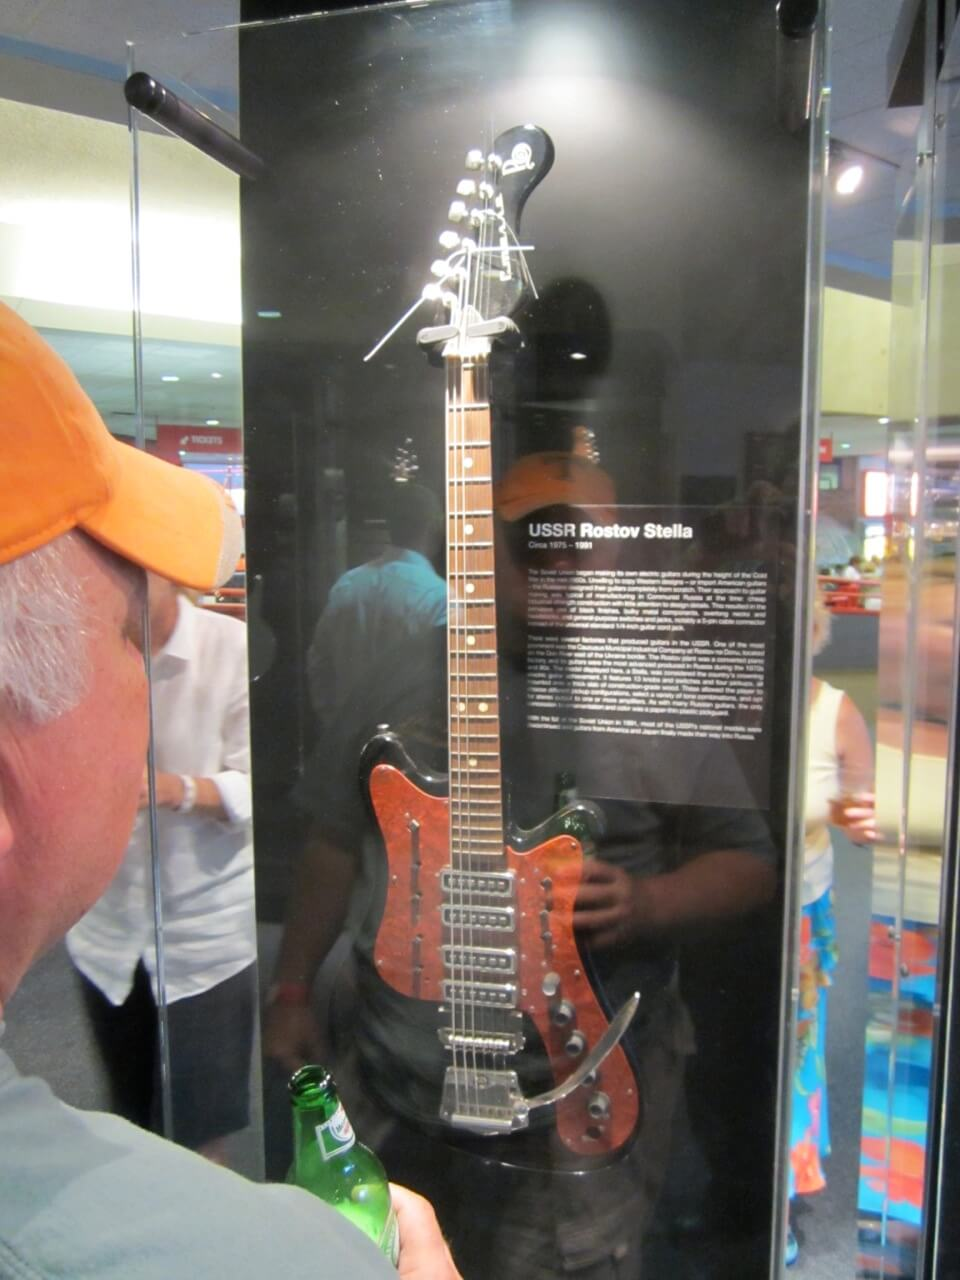 USSR cold war guitar. Compare with the ornate floral designs of the Teisco.